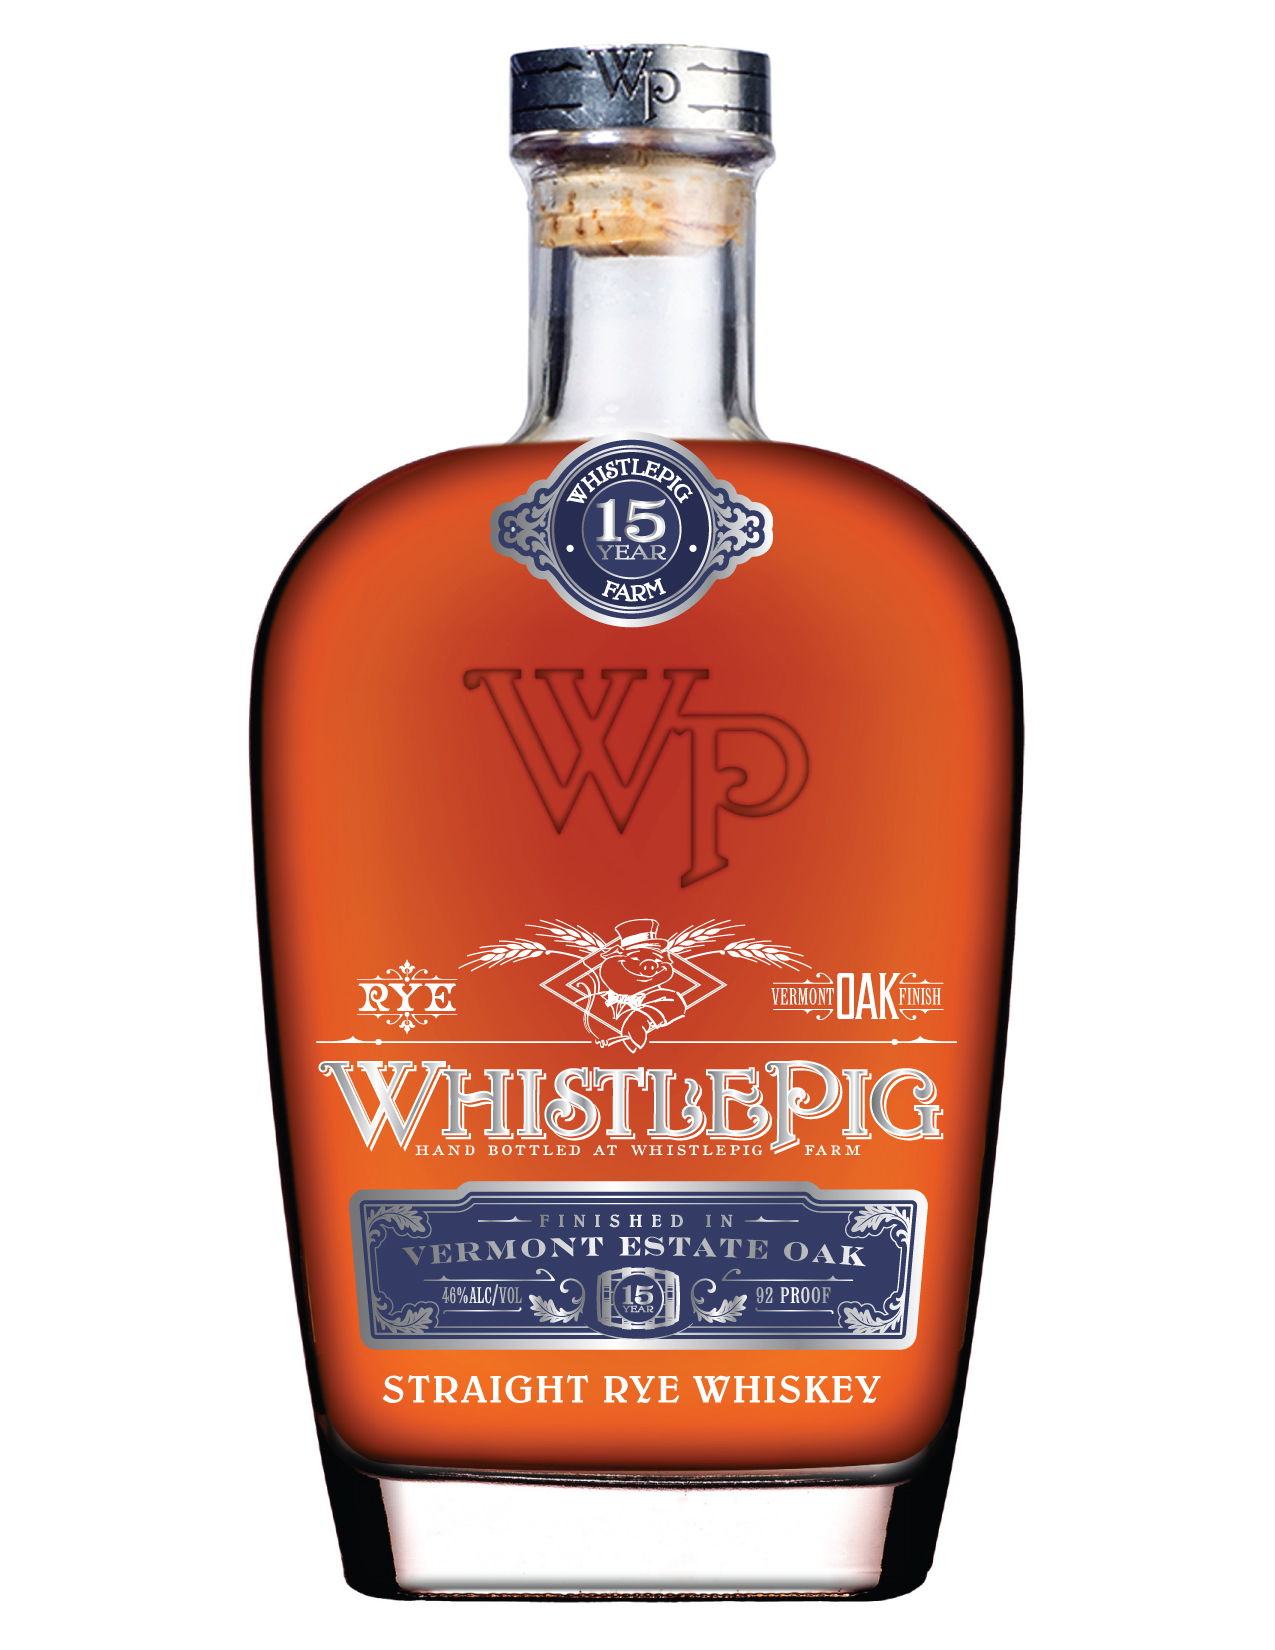 WhistlePig Straight Rye Whiskey 15 Years Old 2016